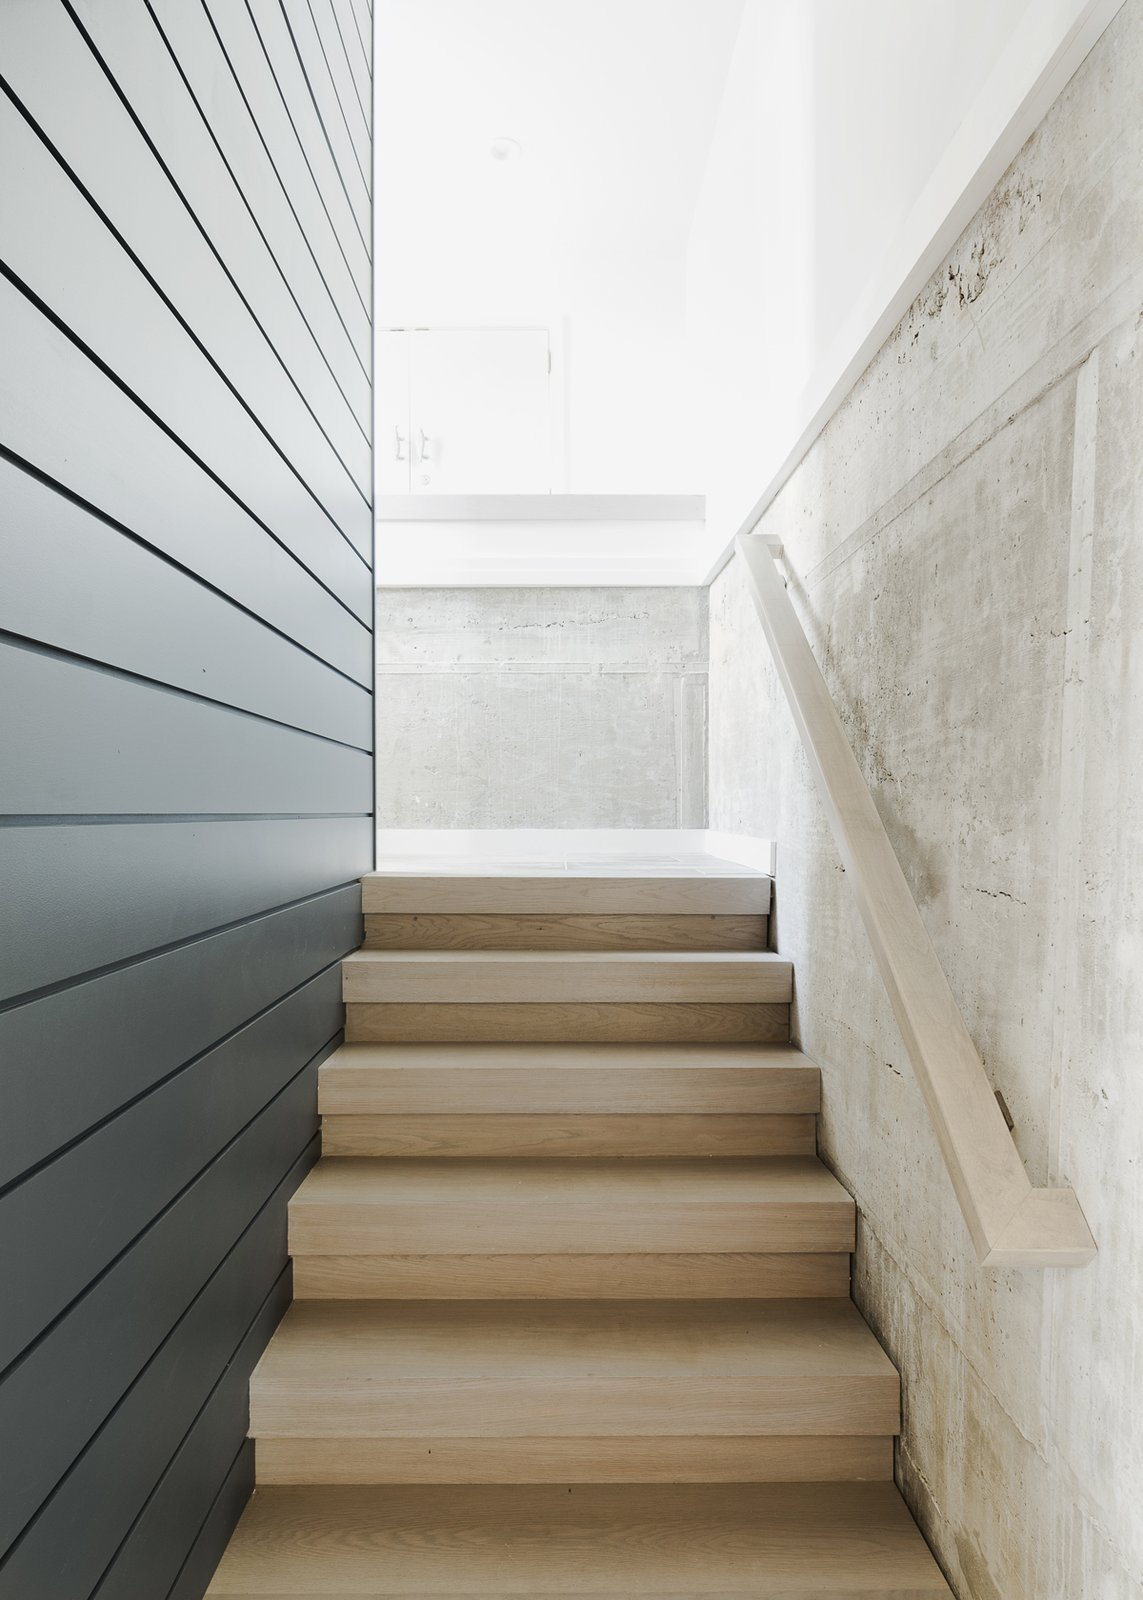 Entry stair and concrete wall